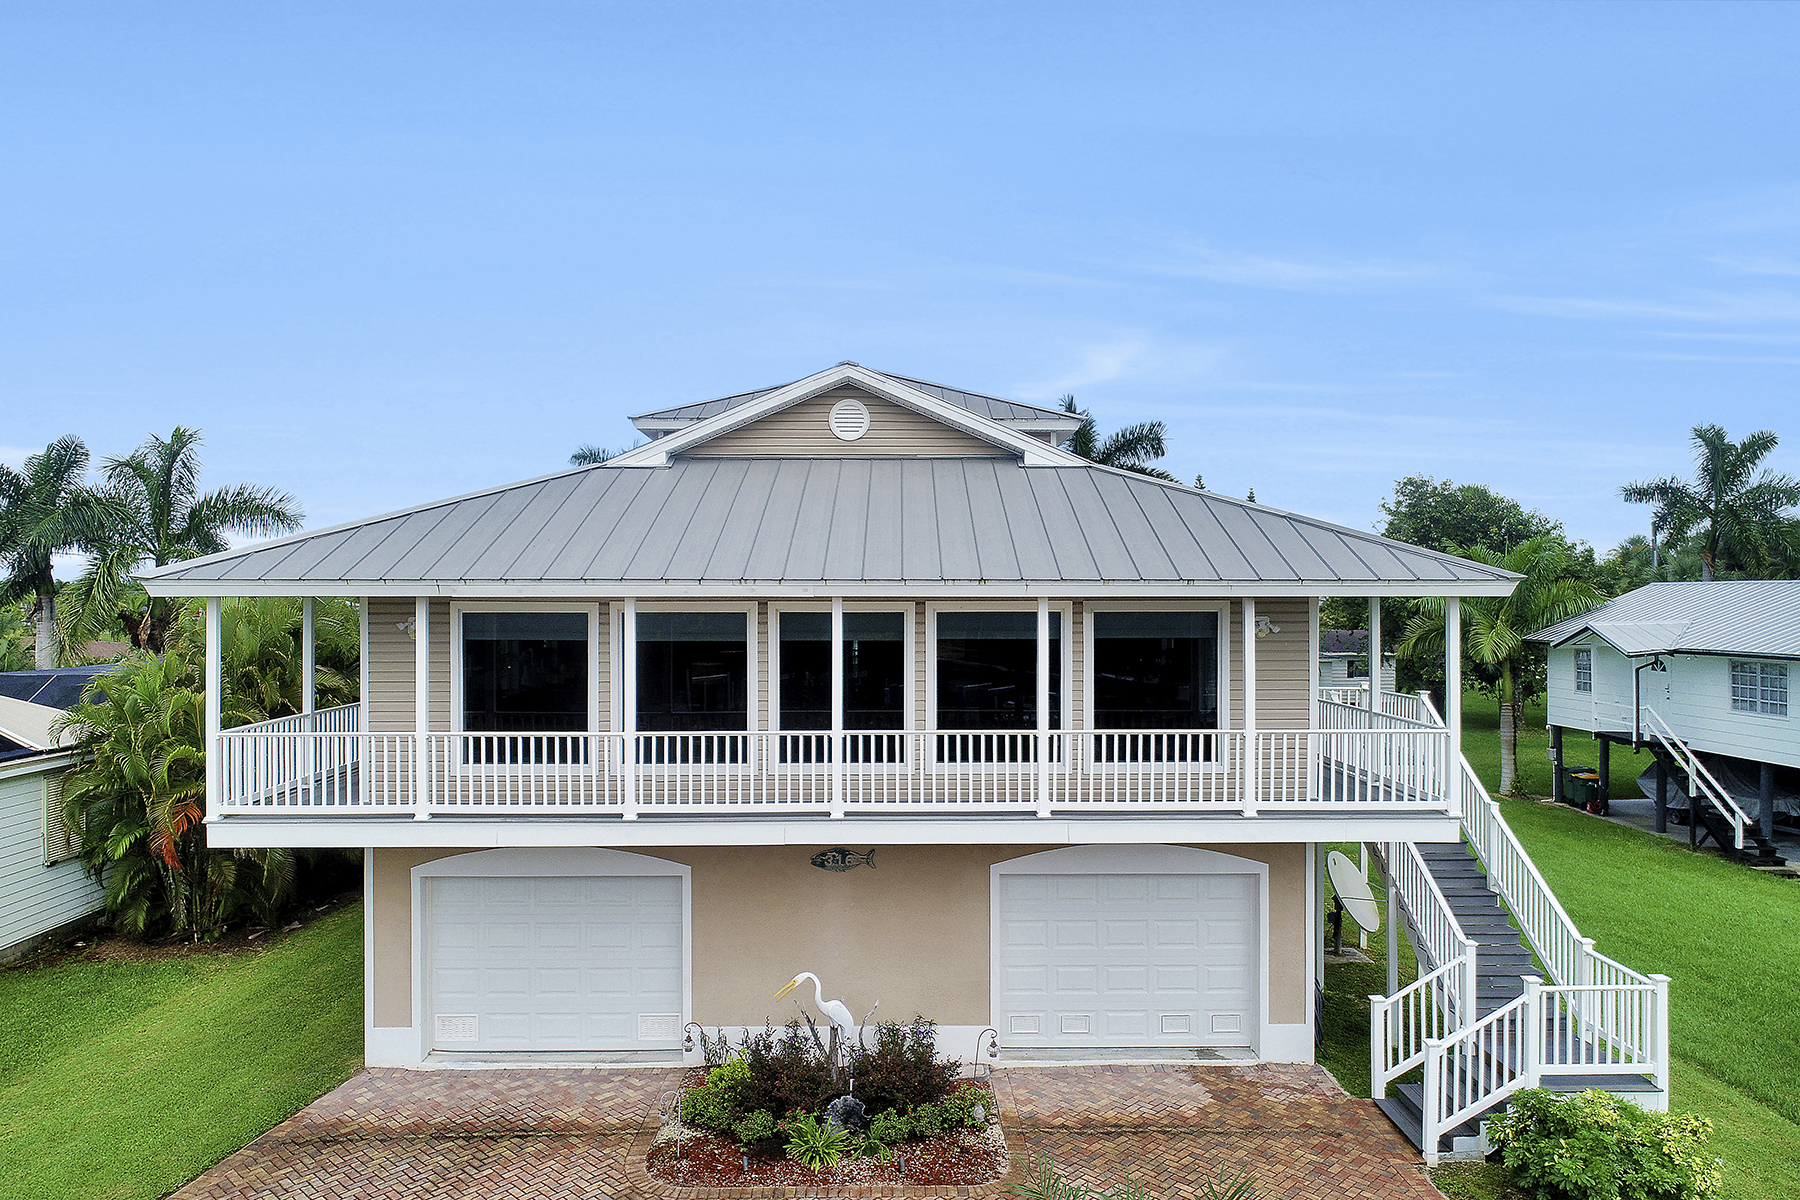 Single Family Homes for Active at EVERGLADES CITY 316 N Storter Avenue Everglades City, Florida 34139 United States